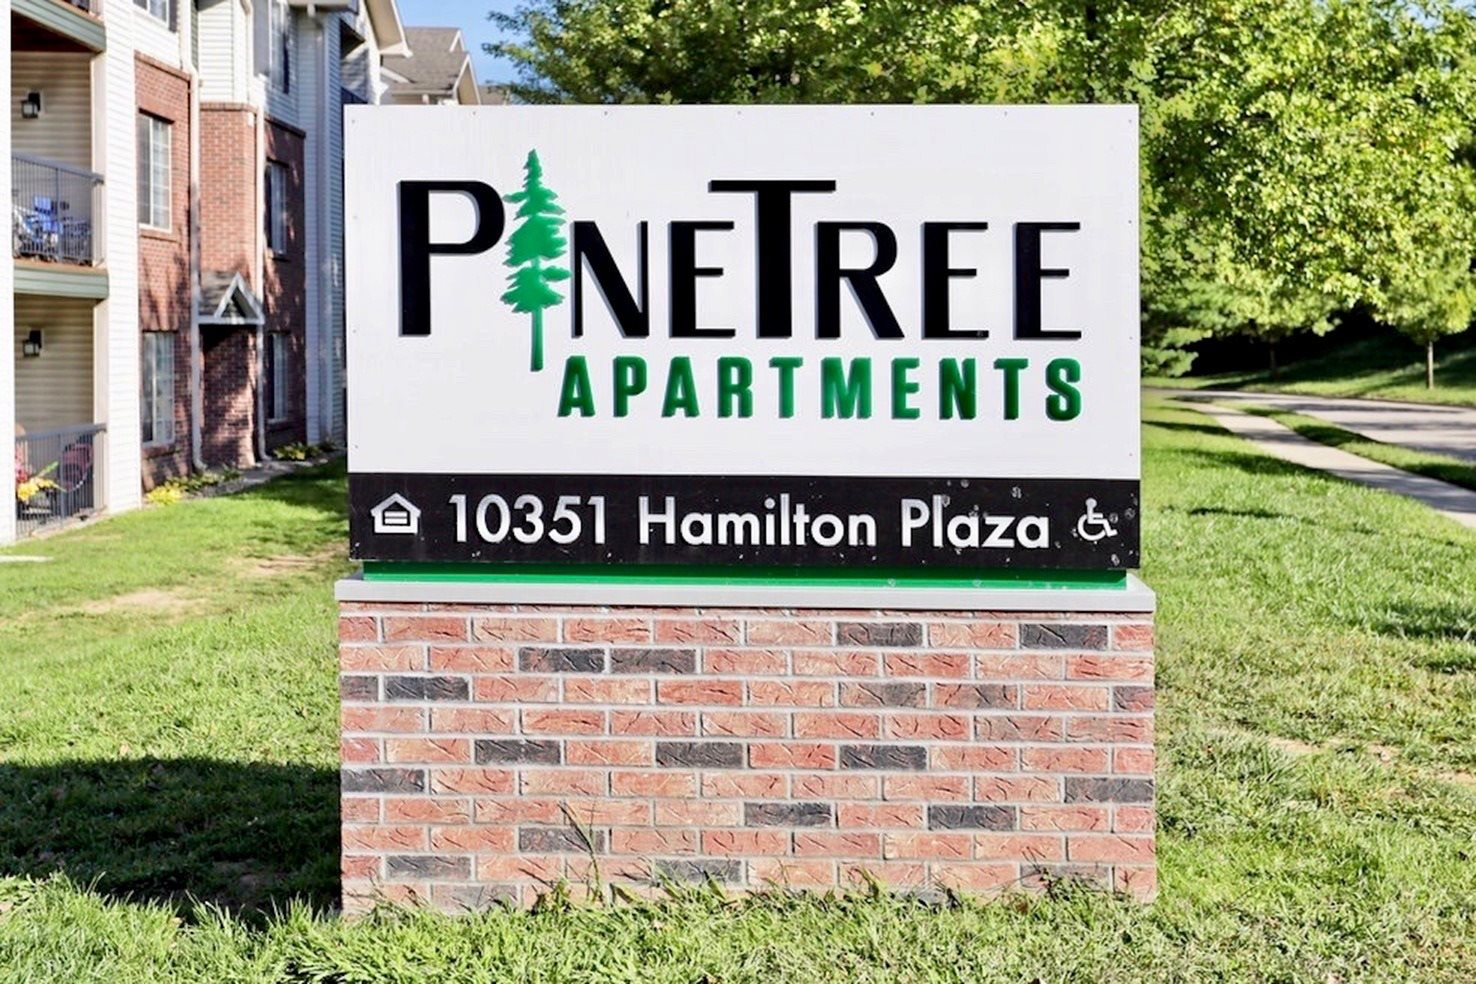 Image of Pine Tree Apartments